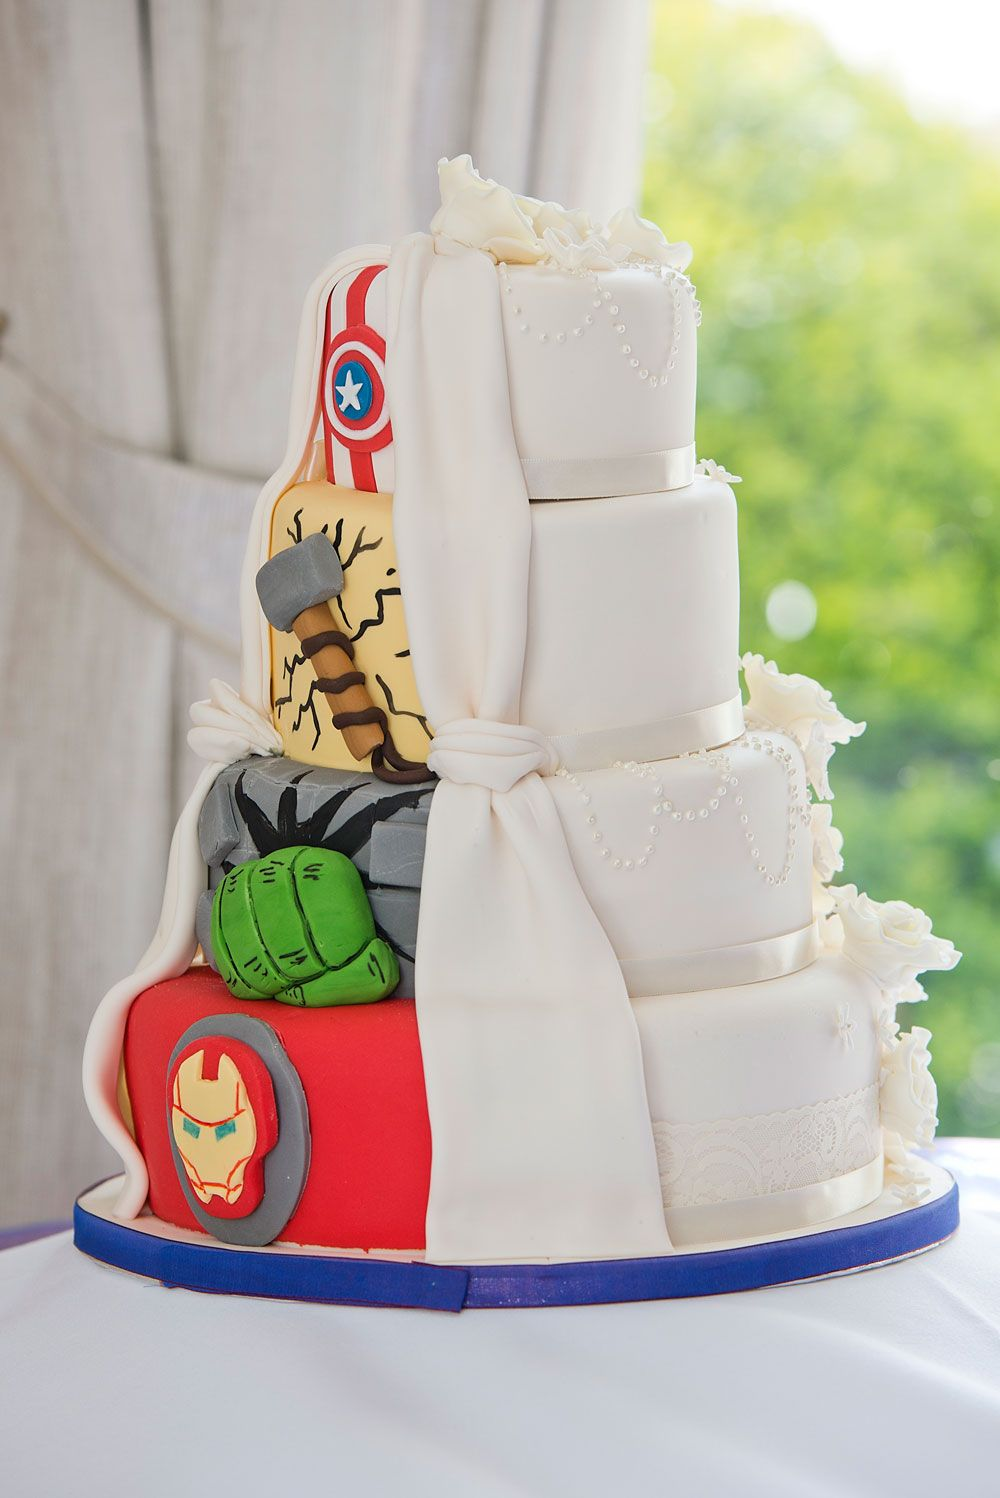 superhero wedding cakes that will make your day totally epic superhero wedding cake wedding. Black Bedroom Furniture Sets. Home Design Ideas